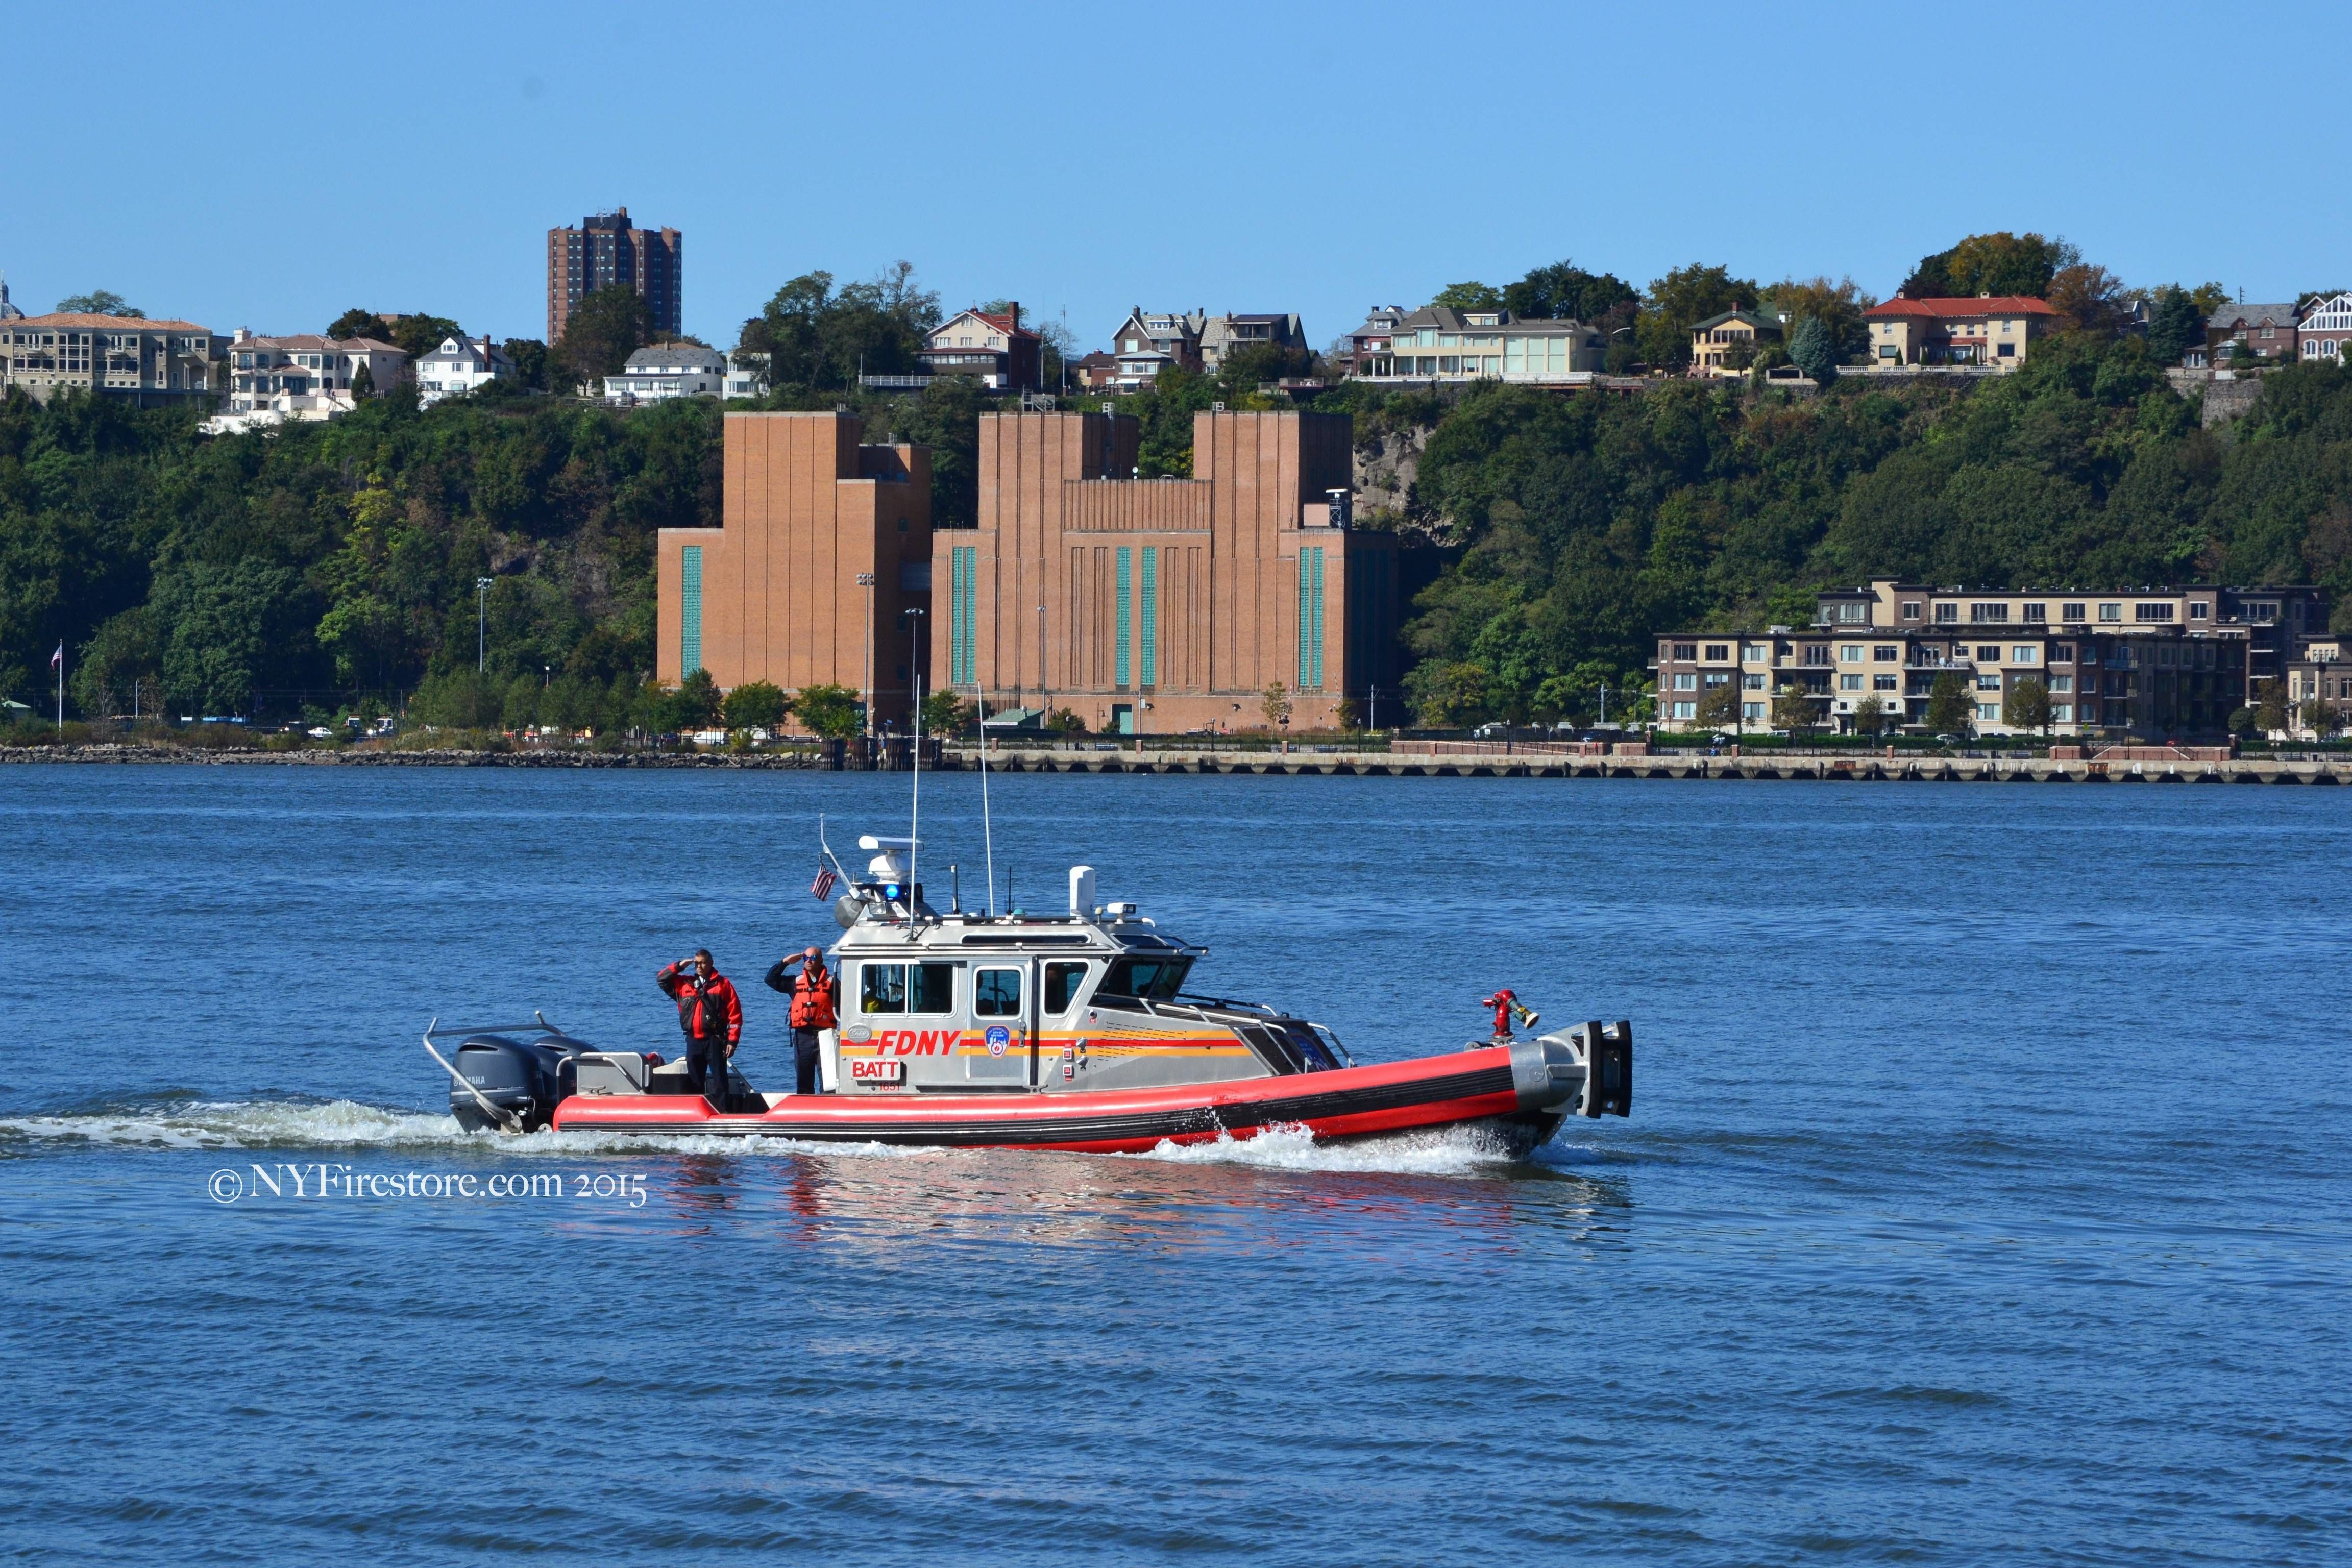 #FDNY Battalion Marine Unit on the Hudson River, #NYC